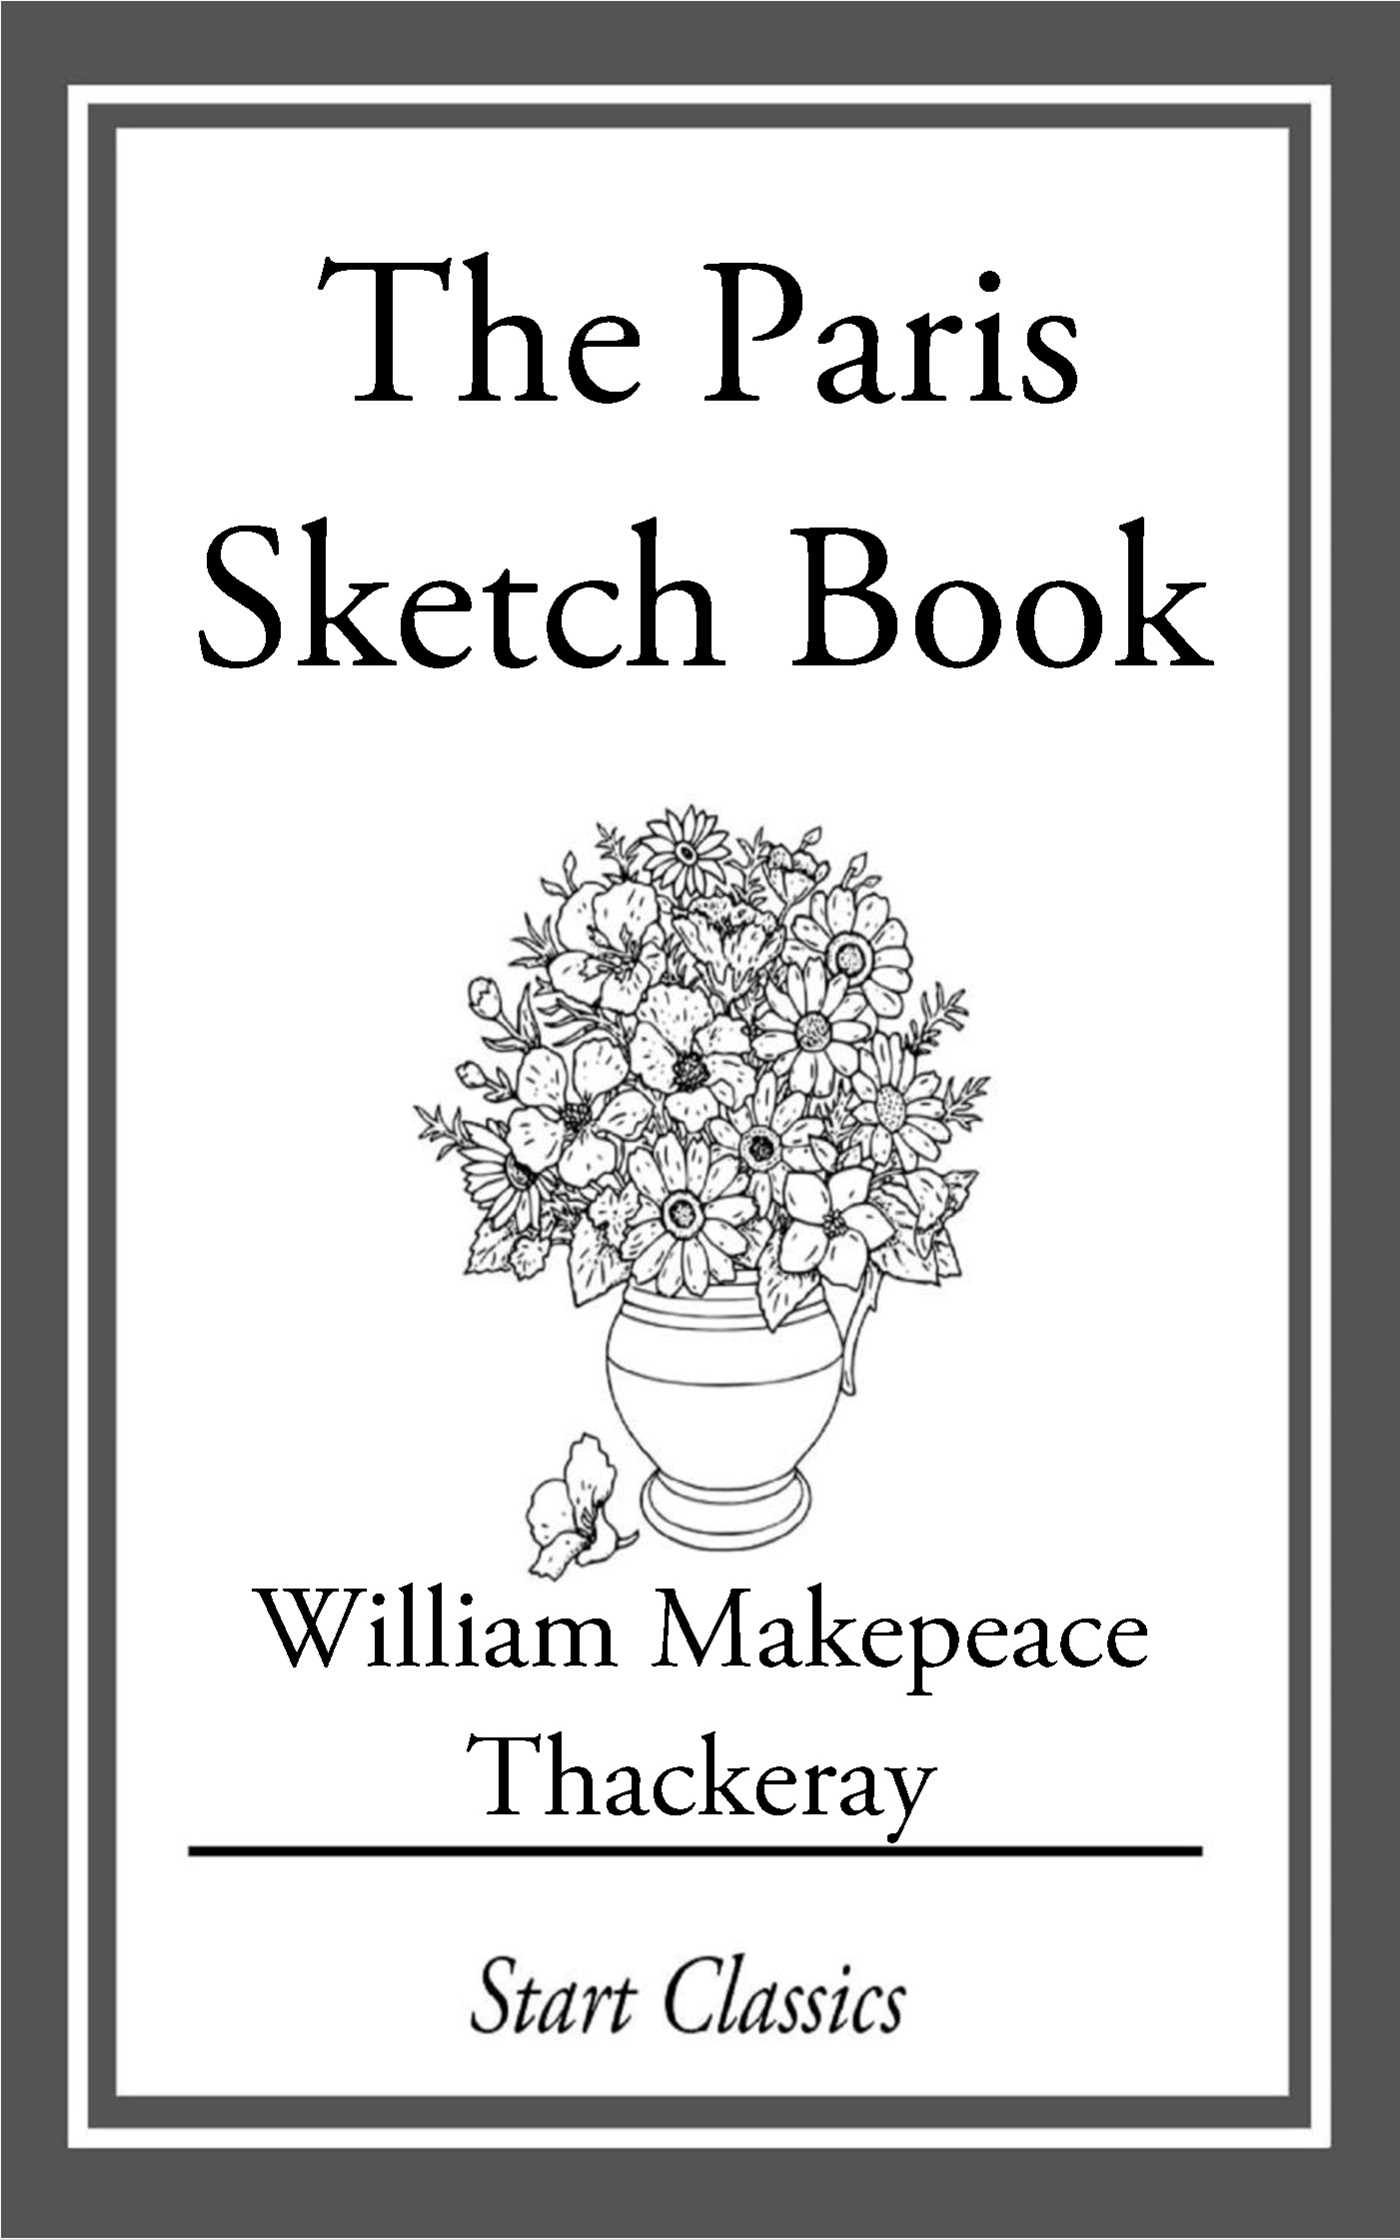 the paris sketch book ebook by william makepeace thackeray